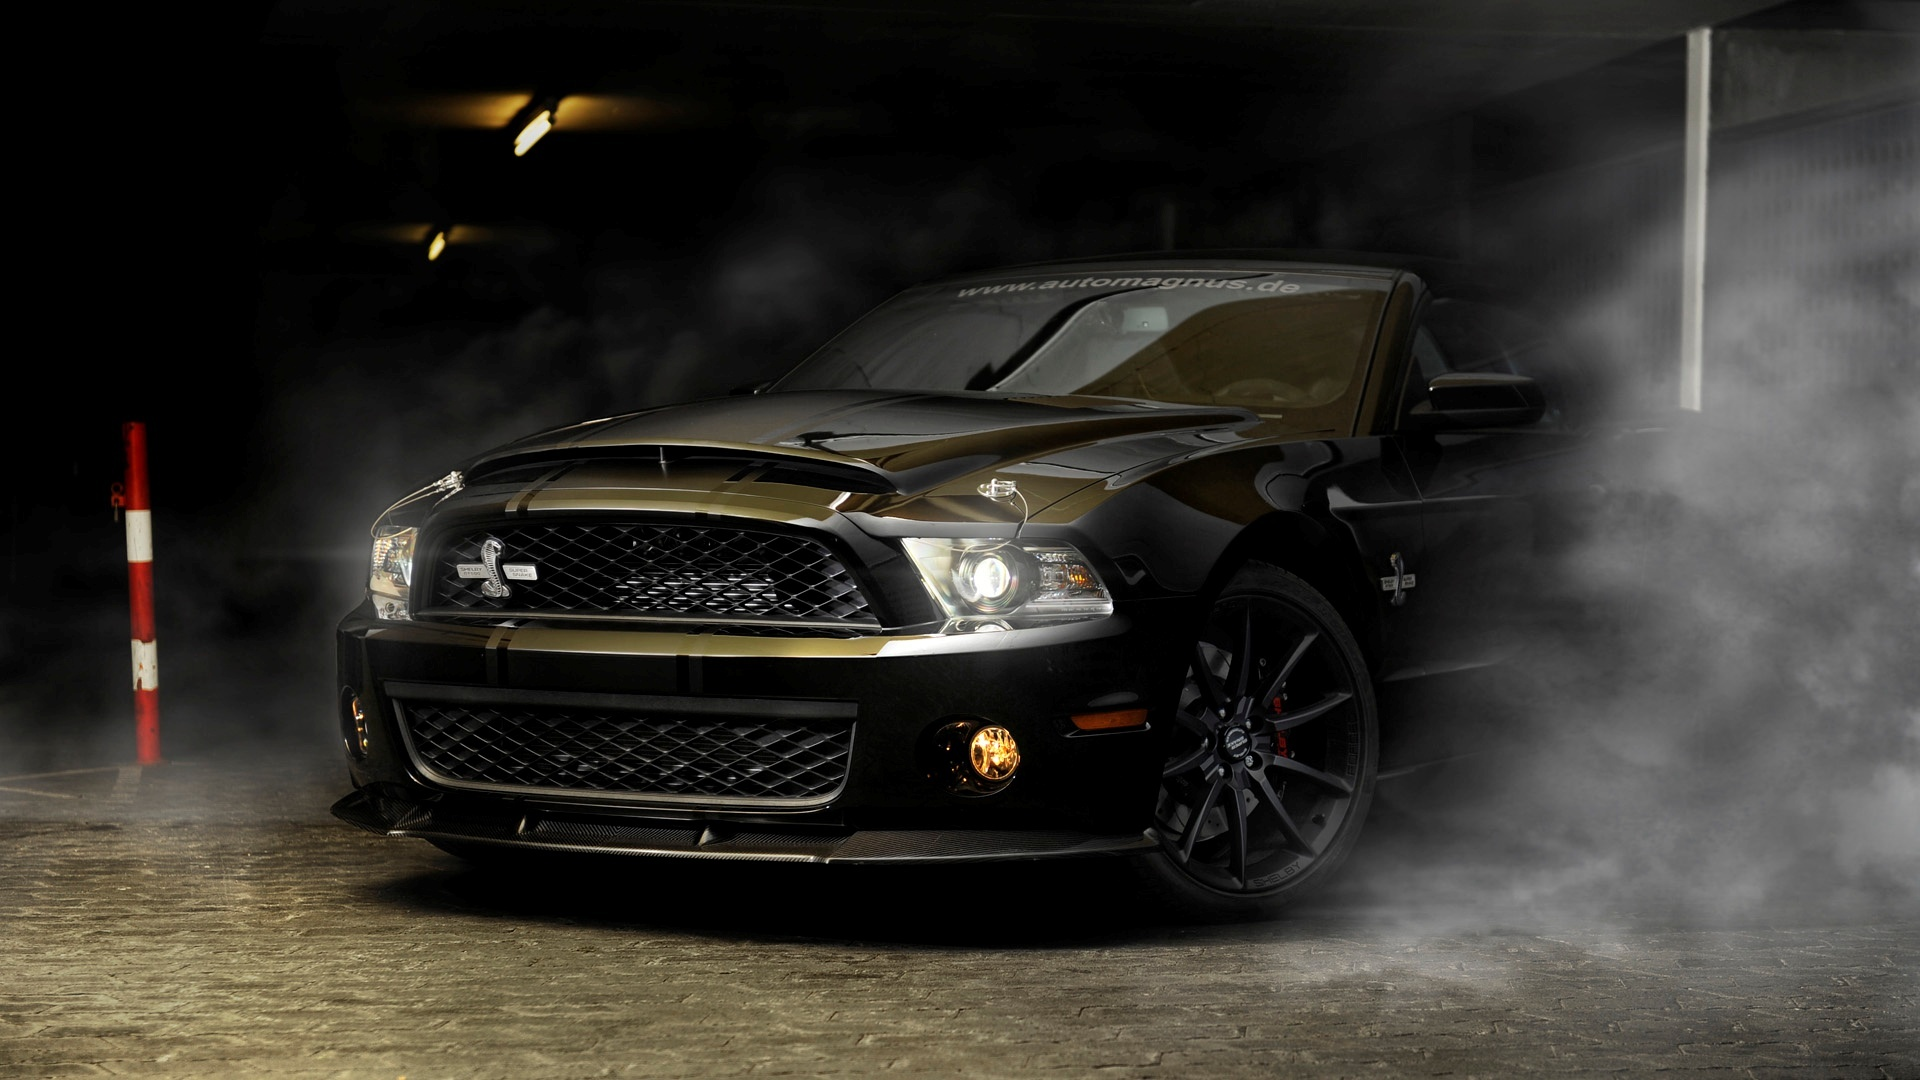 Ford Mustang GT500 Super Snake Shelby Wallpapers   1920x1080   419082 1920x1080